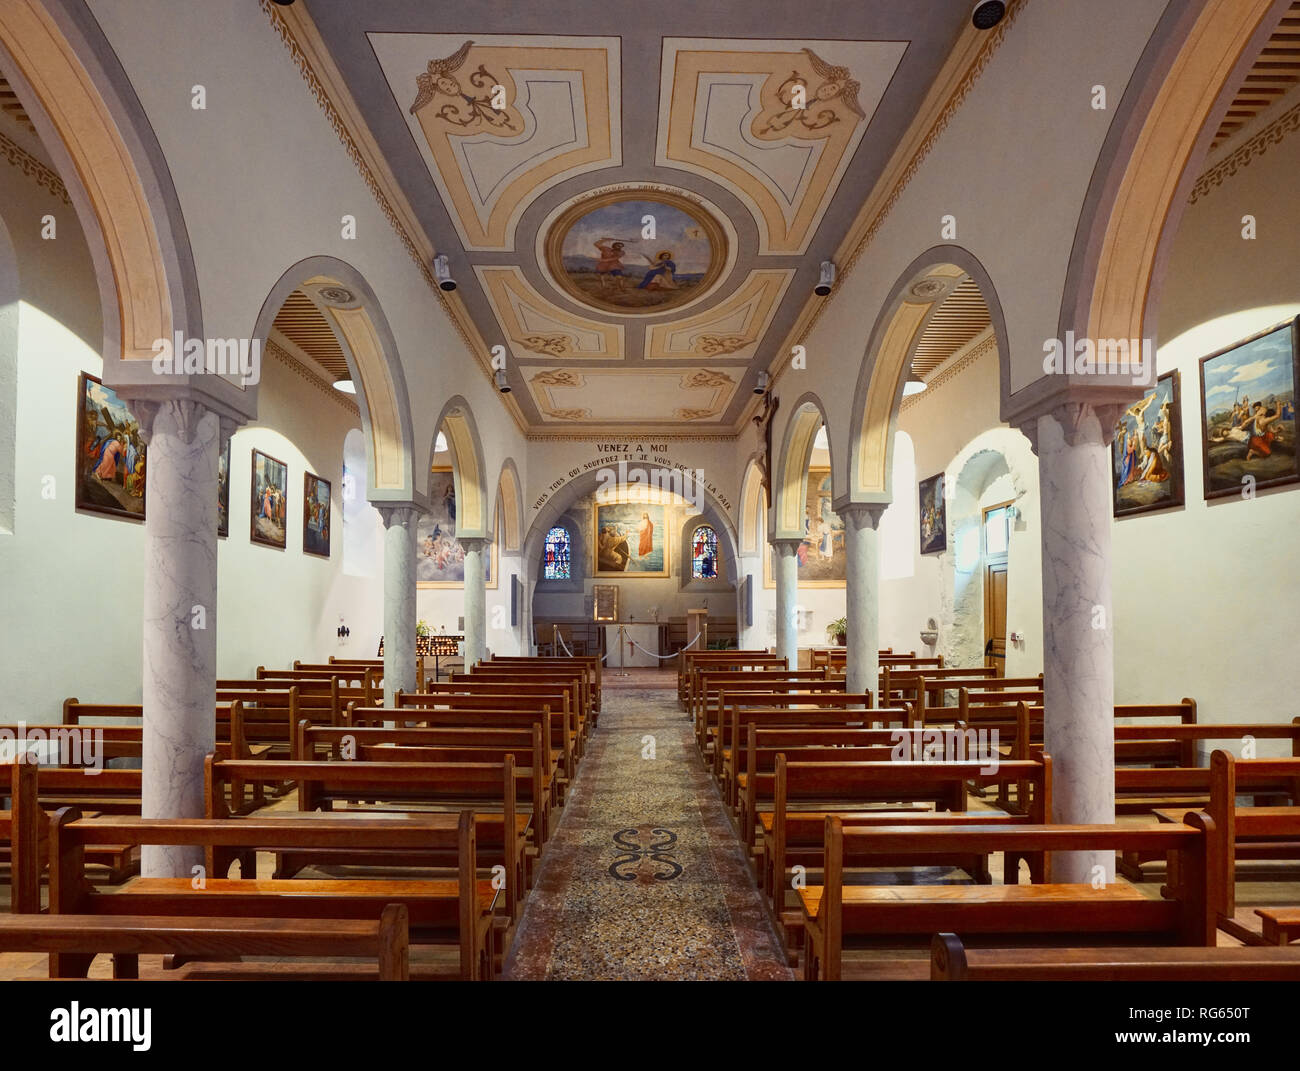 Town church of Yvoire, France - Stock Image